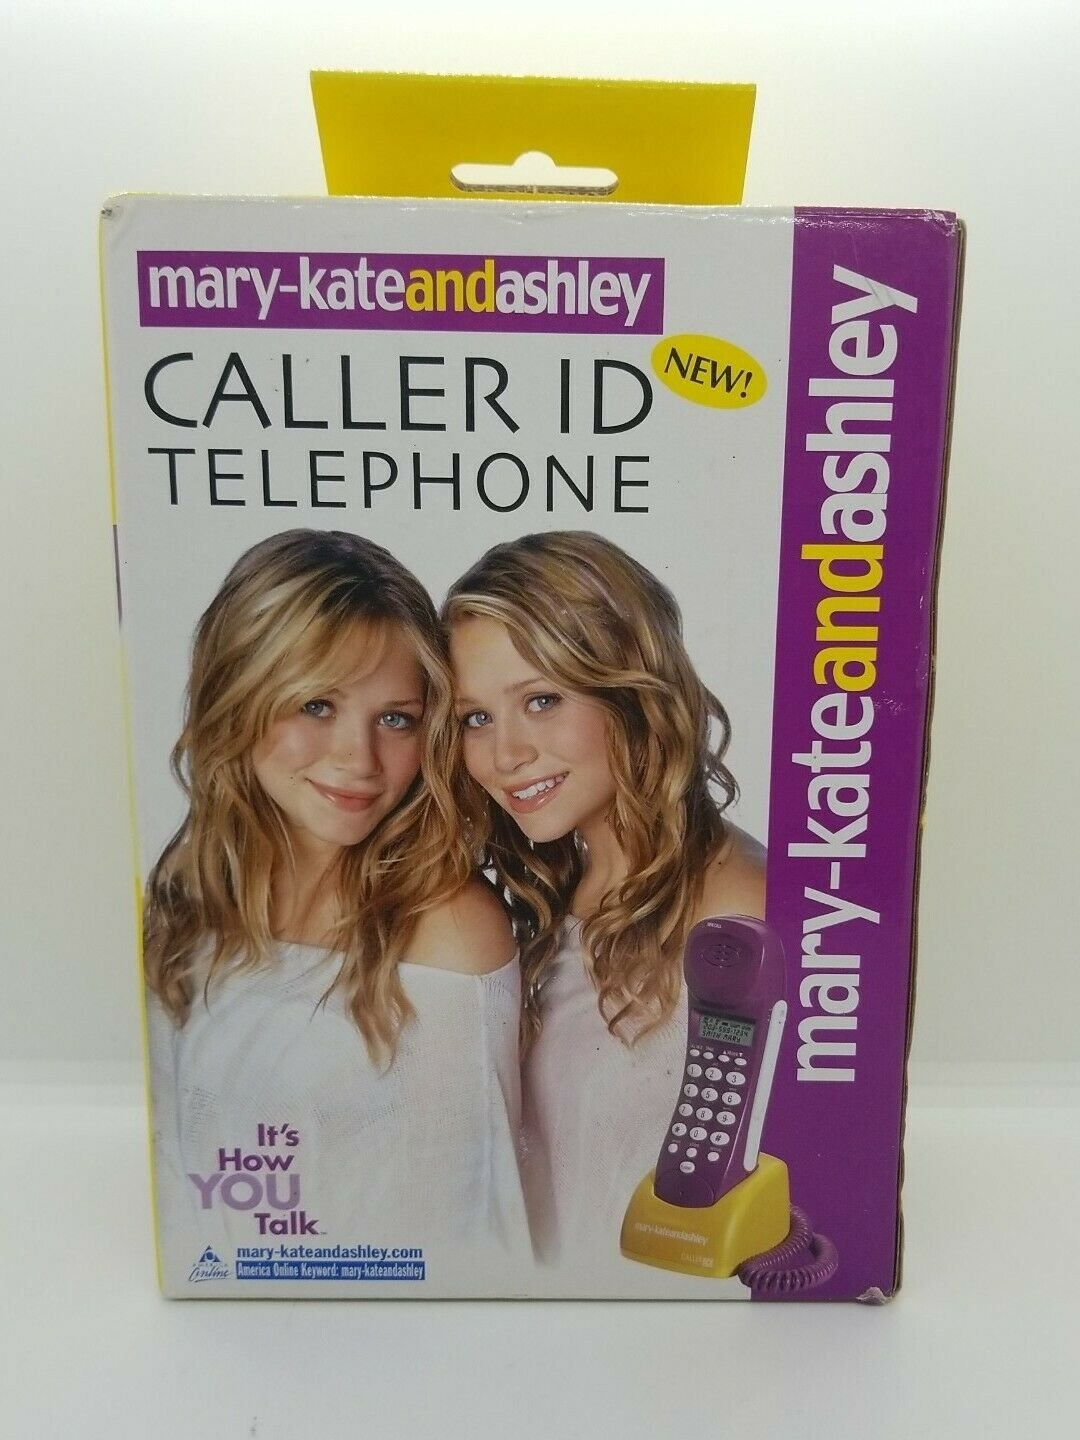 A box for Mary-Kate and Ashely brand caller-ID telephone